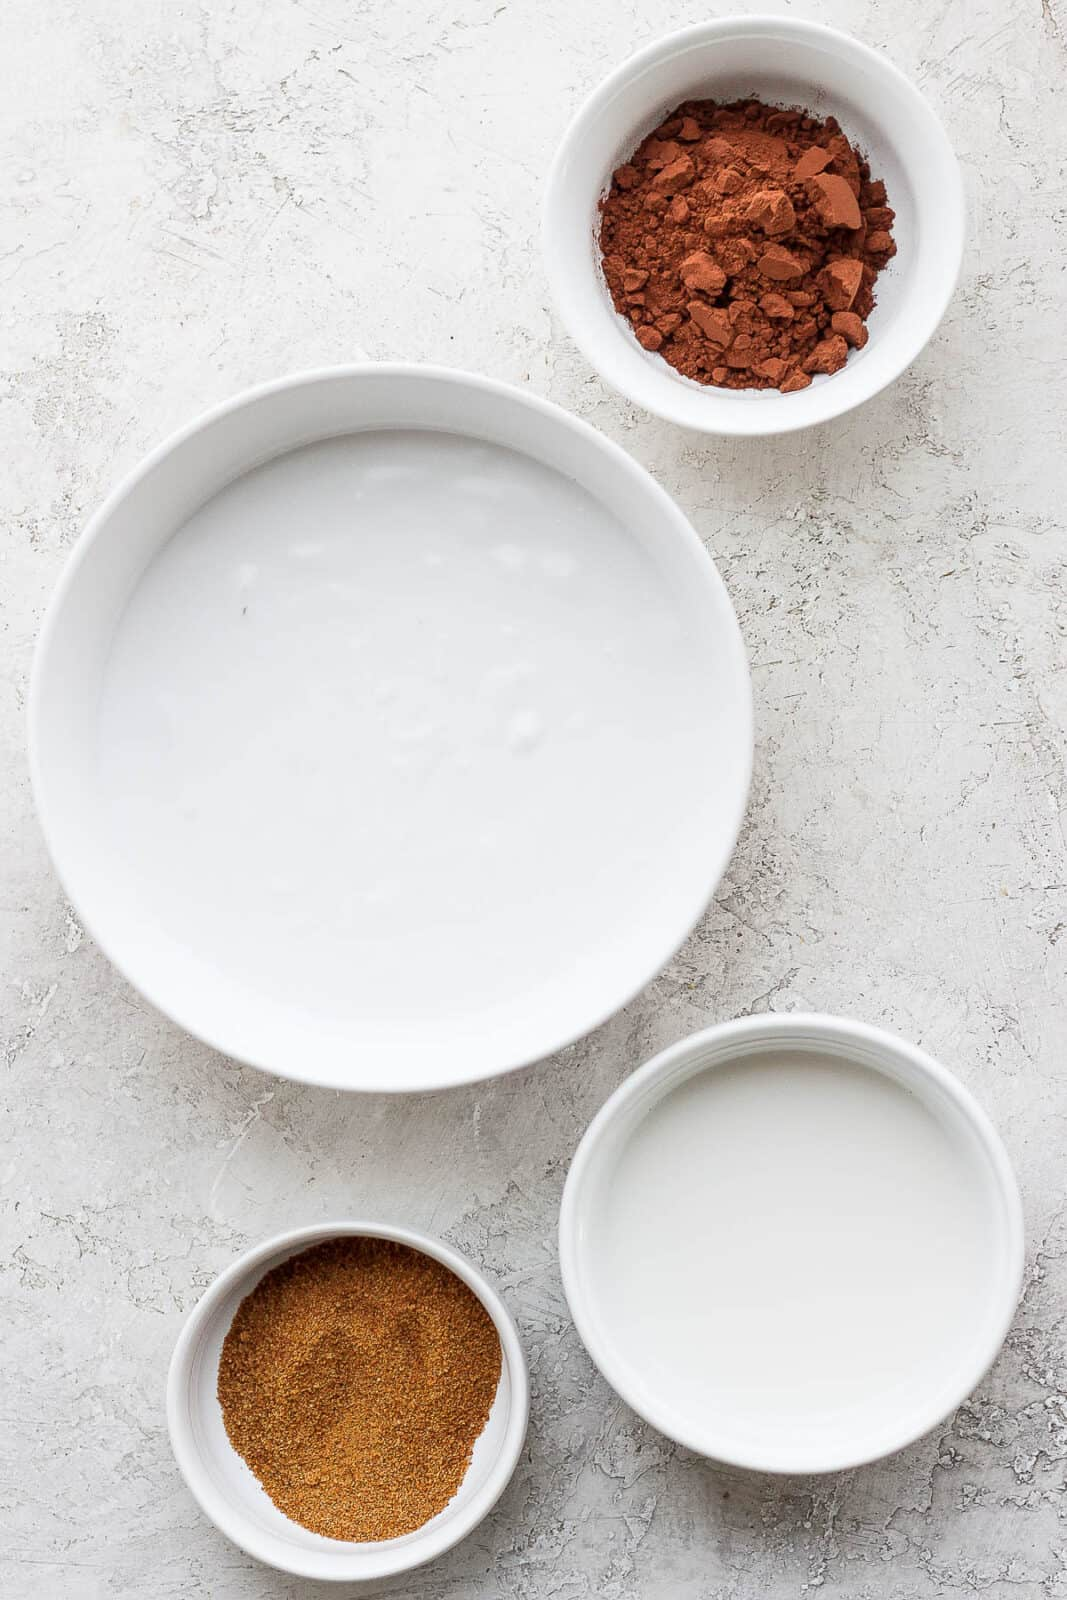 Ingredients all separated in small bowls.